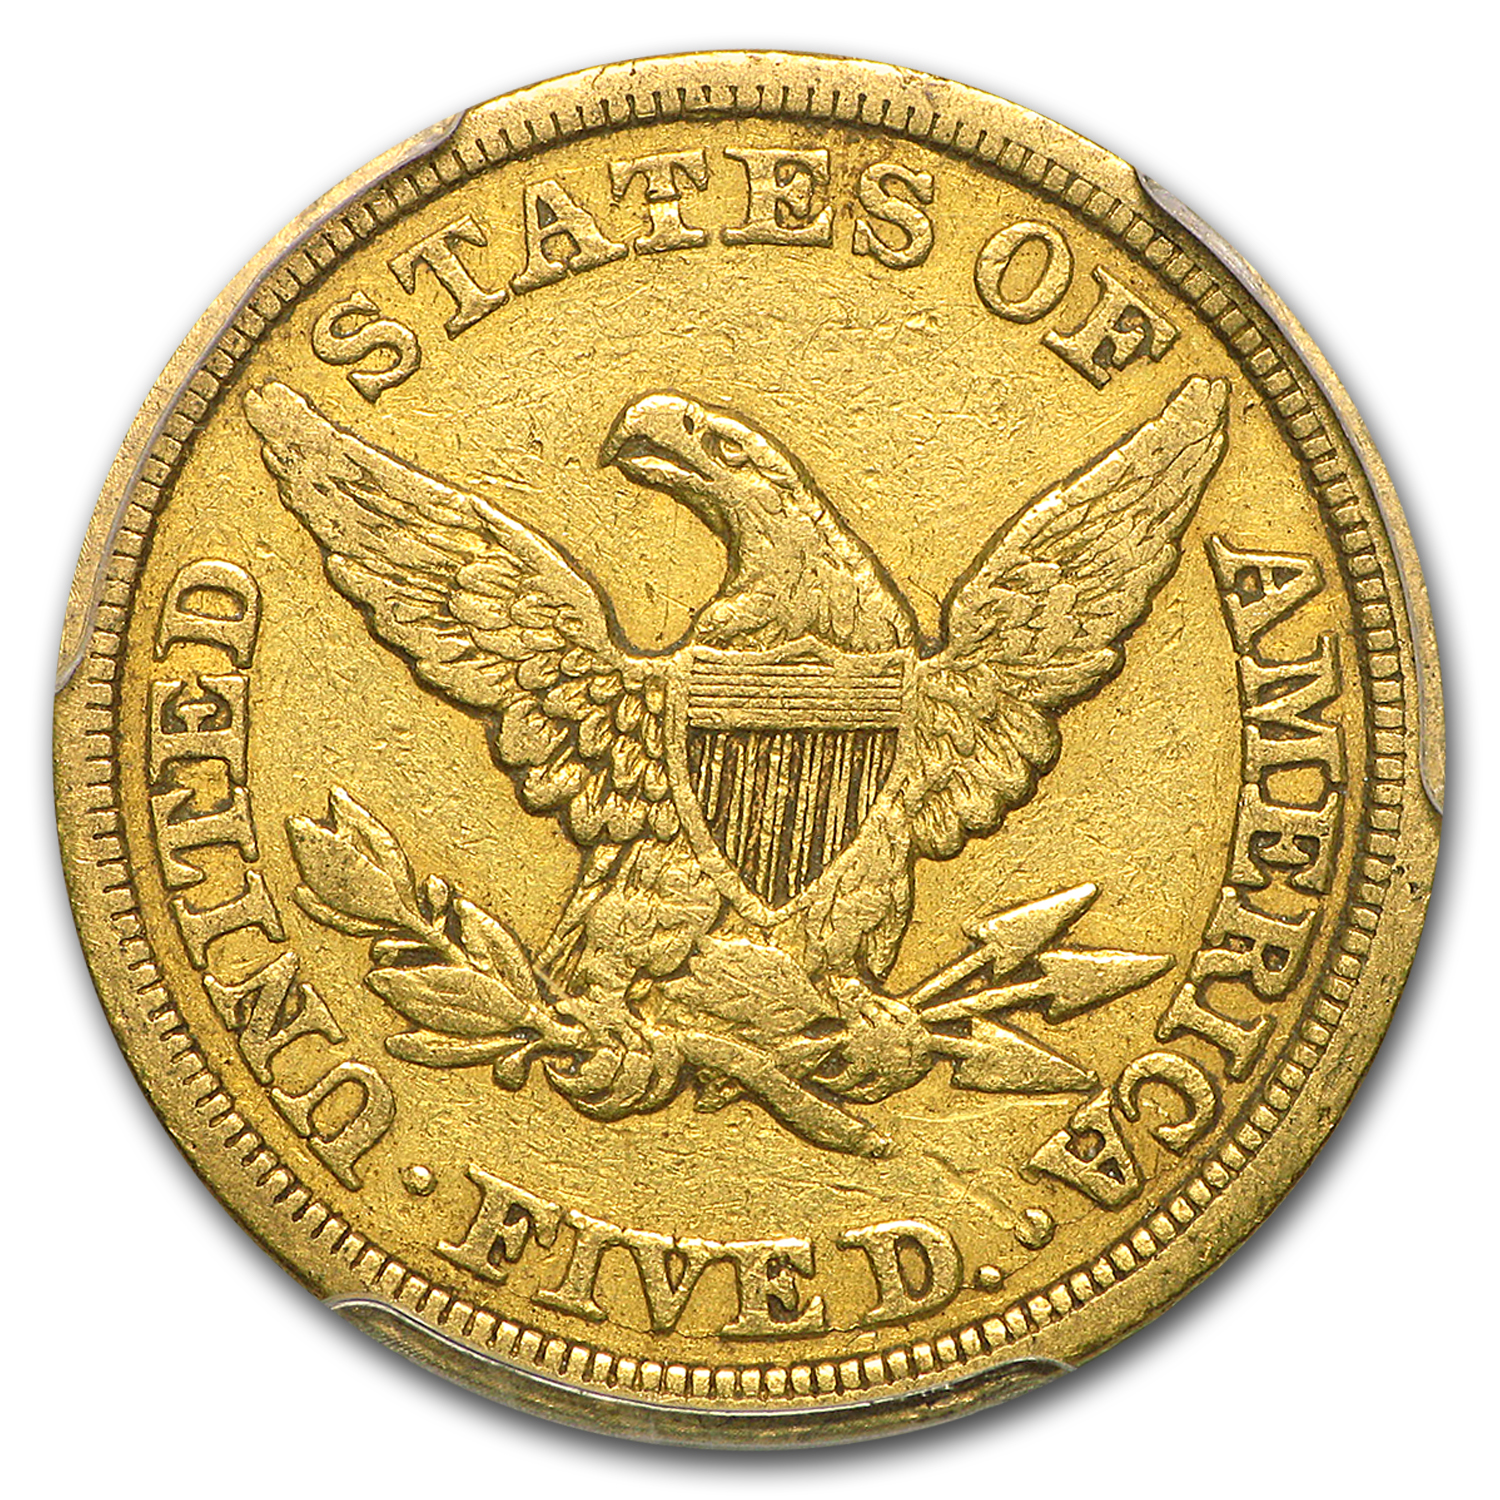 1848 $5 Liberty Gold Half Eagle VF-35 PCGS